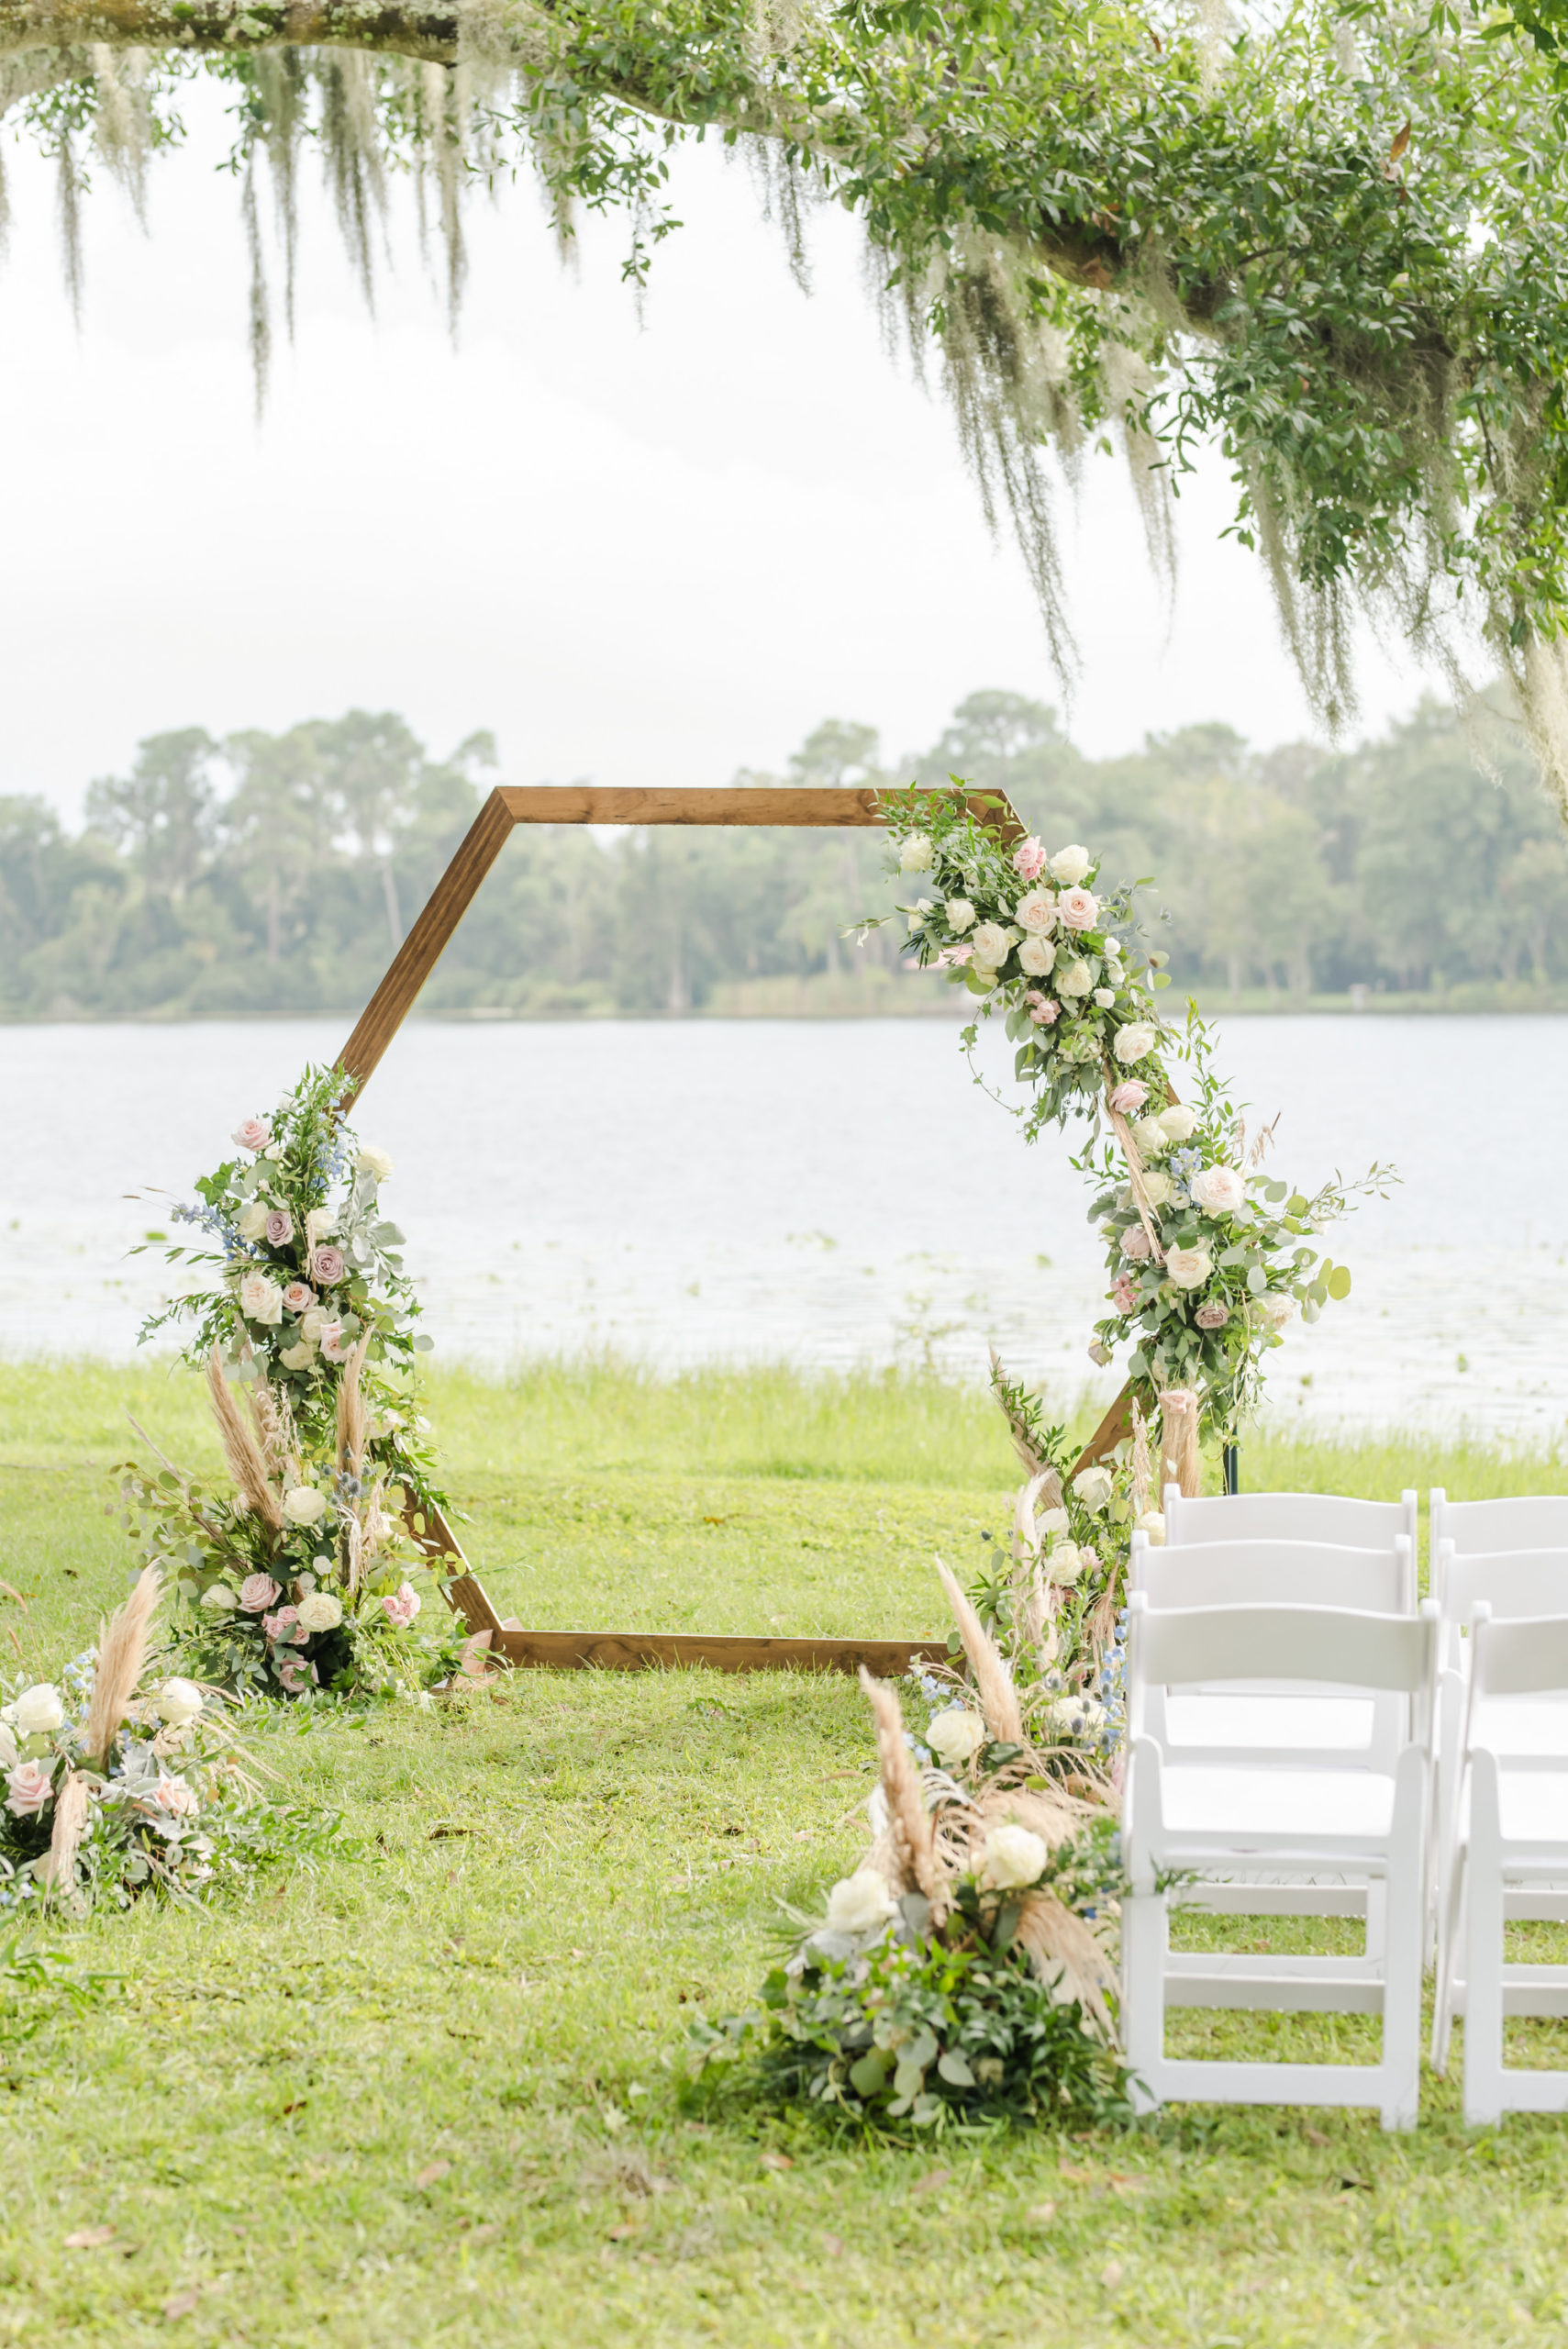 Florida Outdoor Waterfront Wedding Ceremony, Under Large Flowing Oak Tree, Rustic Wooden Hexagon Wedding Arch with Whimsical Inspired White and Dusty Rose Decor, and Pompous Grass Ceremony Flowers   Tampa Bay Wedding Planner and Day of Coordinator Elegant Affairs by Design